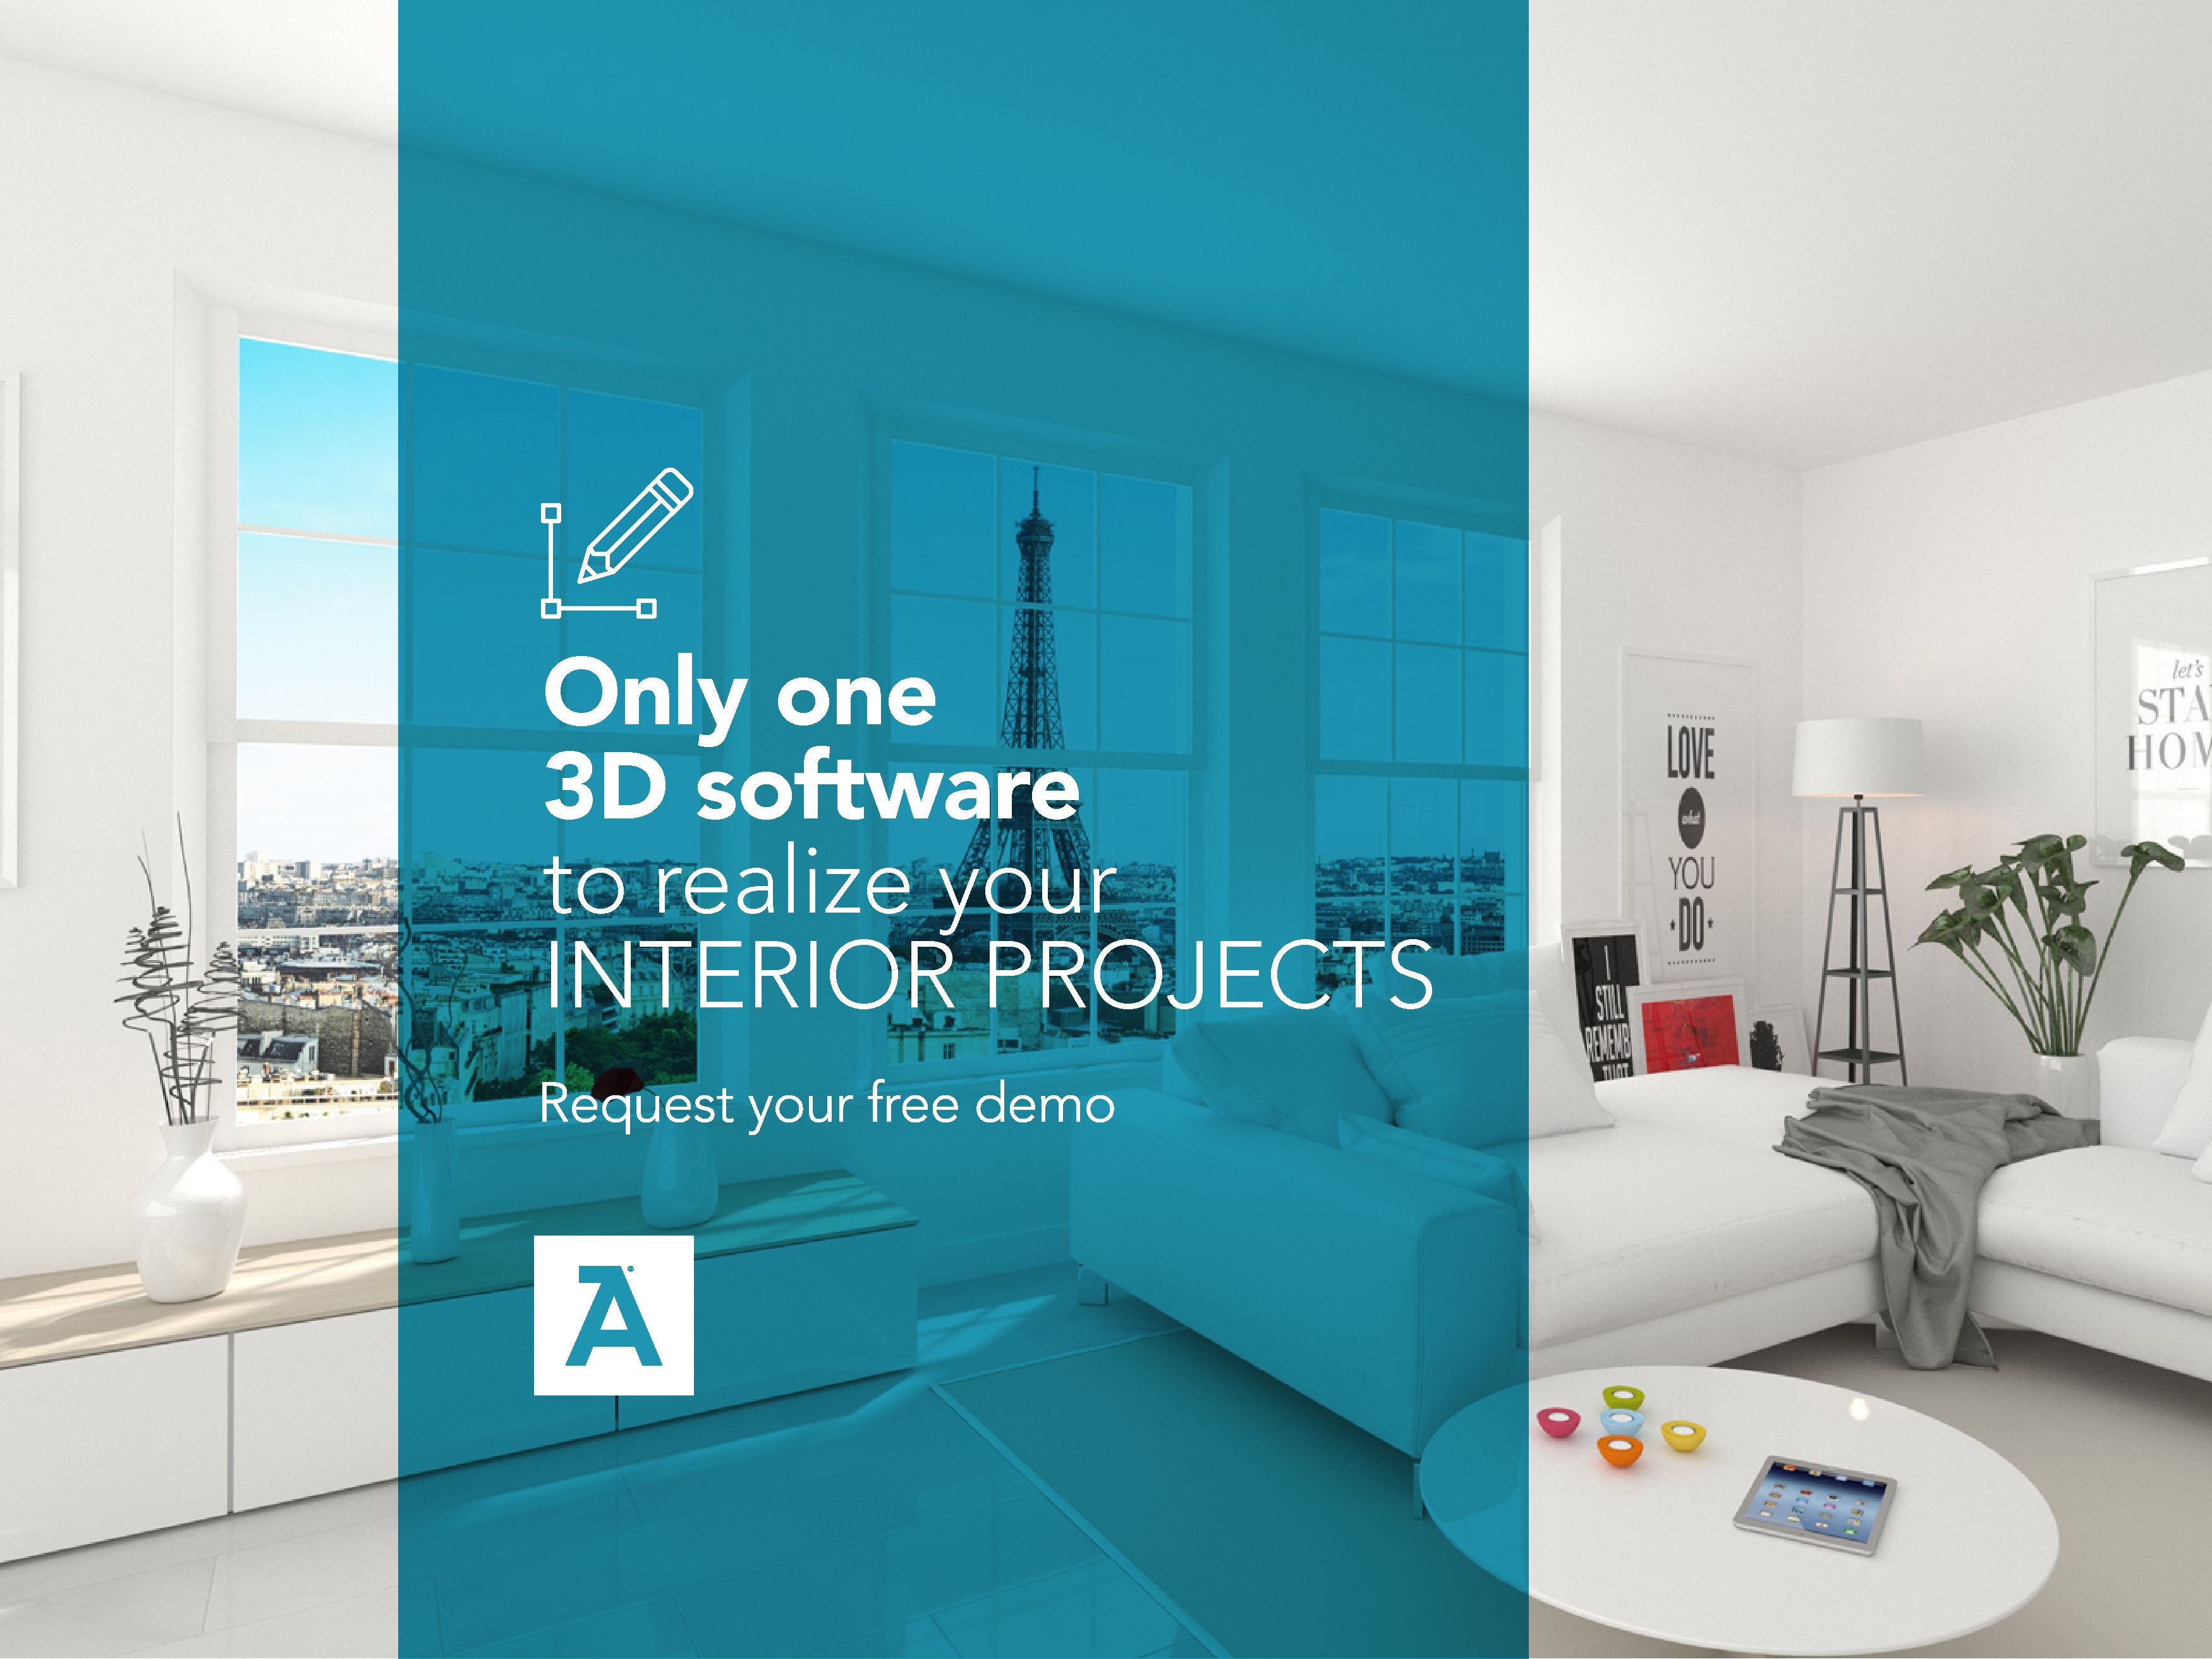 Flos is an official partner and its exclusive products for Software arredamento gratis